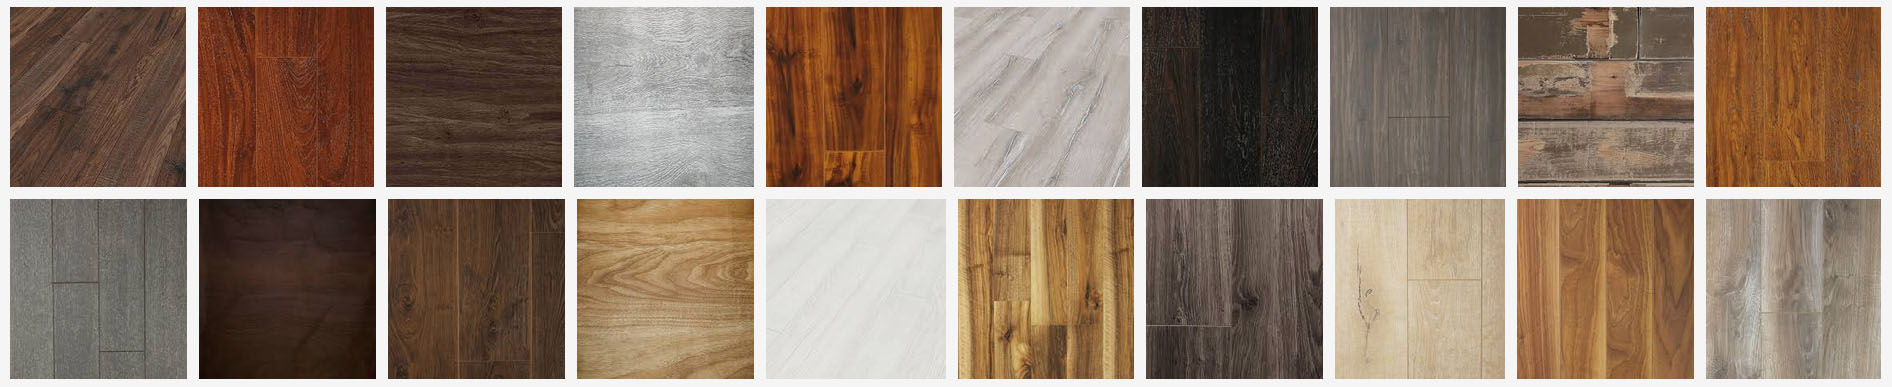 Laminate Floors Direct West